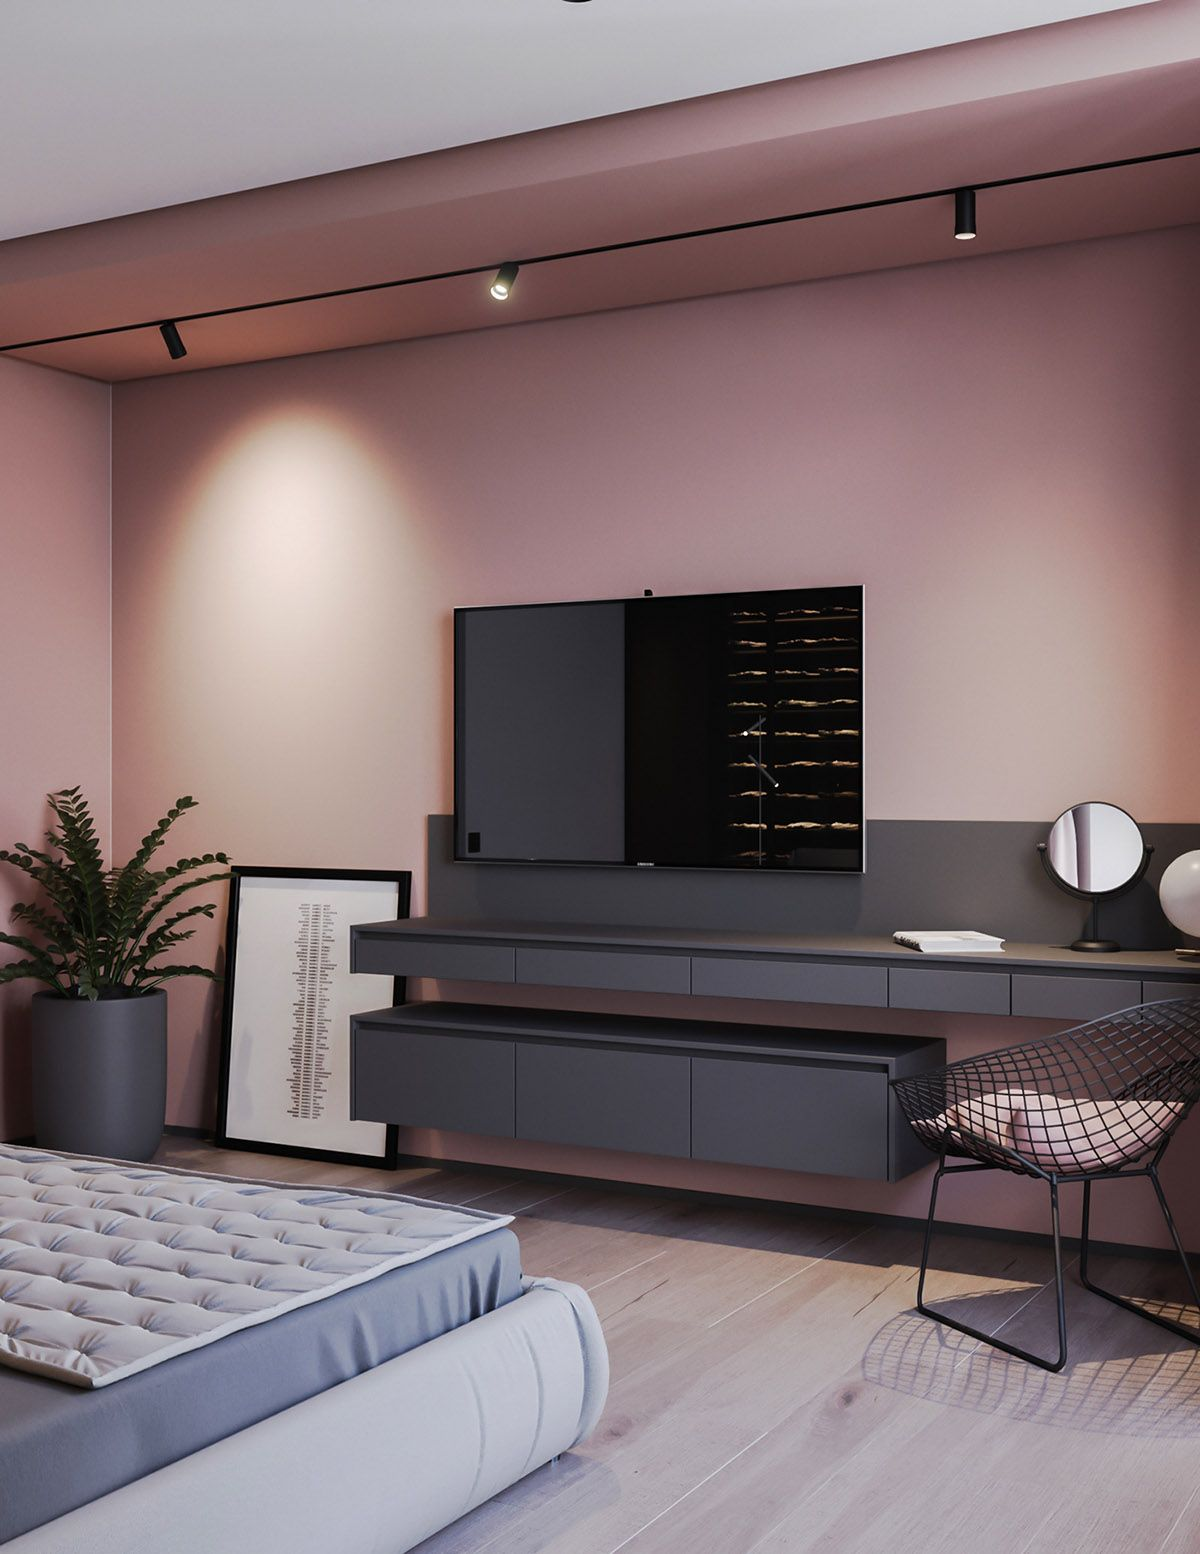 A Striking Example Of Interior Design Using Pink & Grey #housedesigninterior